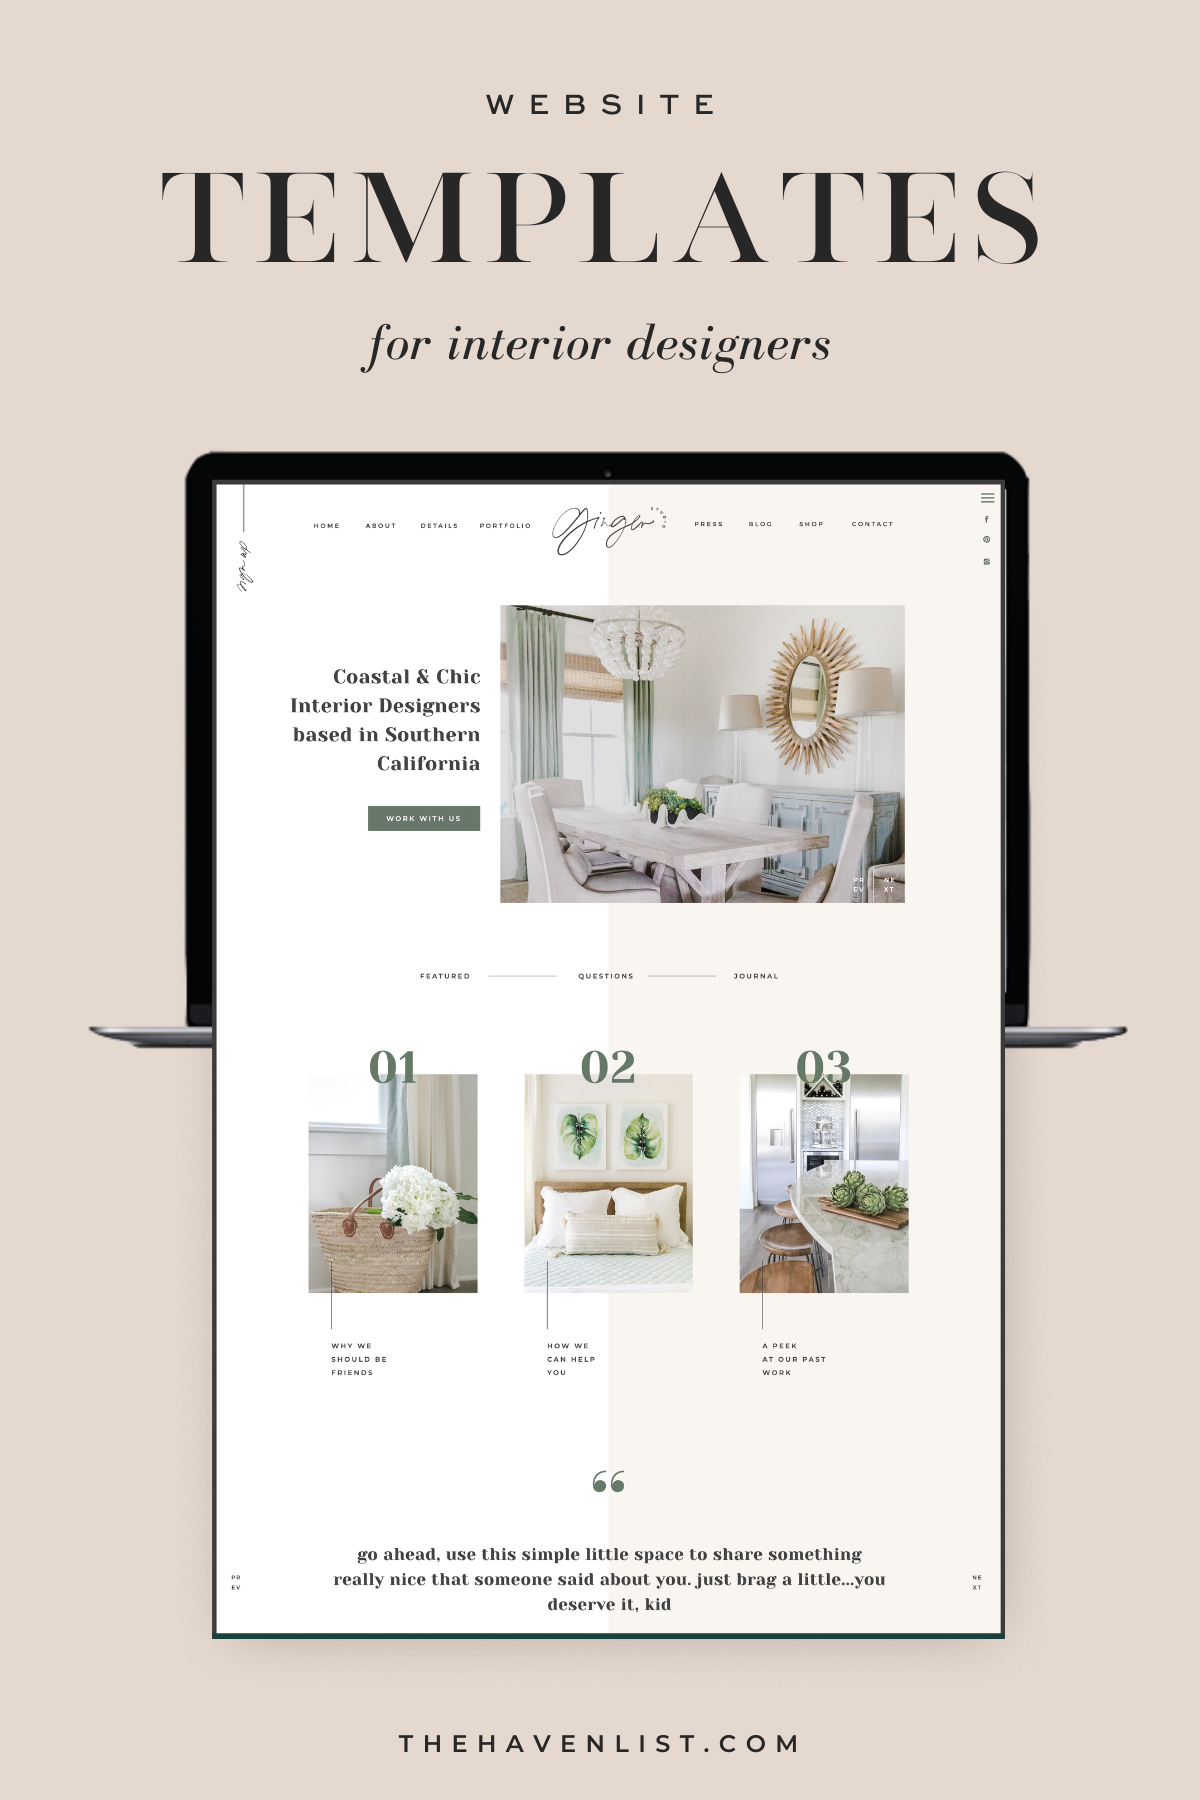 Easy-To-Edit Showit Website Templates and Customizable Website Templates for Interior Designers and Creatives - Stylish Social Media Templates, Website Content Planner & Guide, Showit Website Template, Saffron Avenue, The Haven List, Ginger